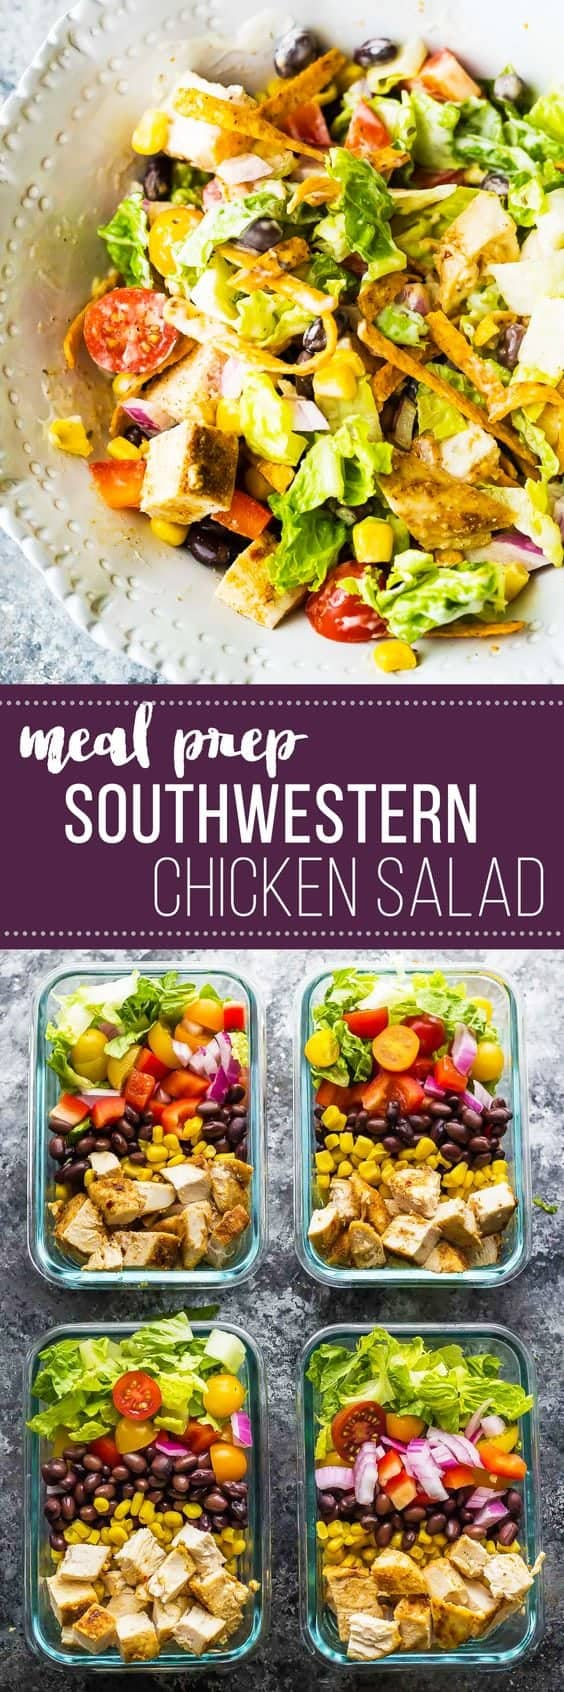 This southwestern chopped chicken salad is going to be your new favorite work lunch for your meal prep! Prep ahead on the weekend and when you're ready to serve, drizzle with ranch and sprinkle with tortilla strips. #mealprep #sponsored #salad #ranch #chicken #lunch #sweetpeasandsaffron